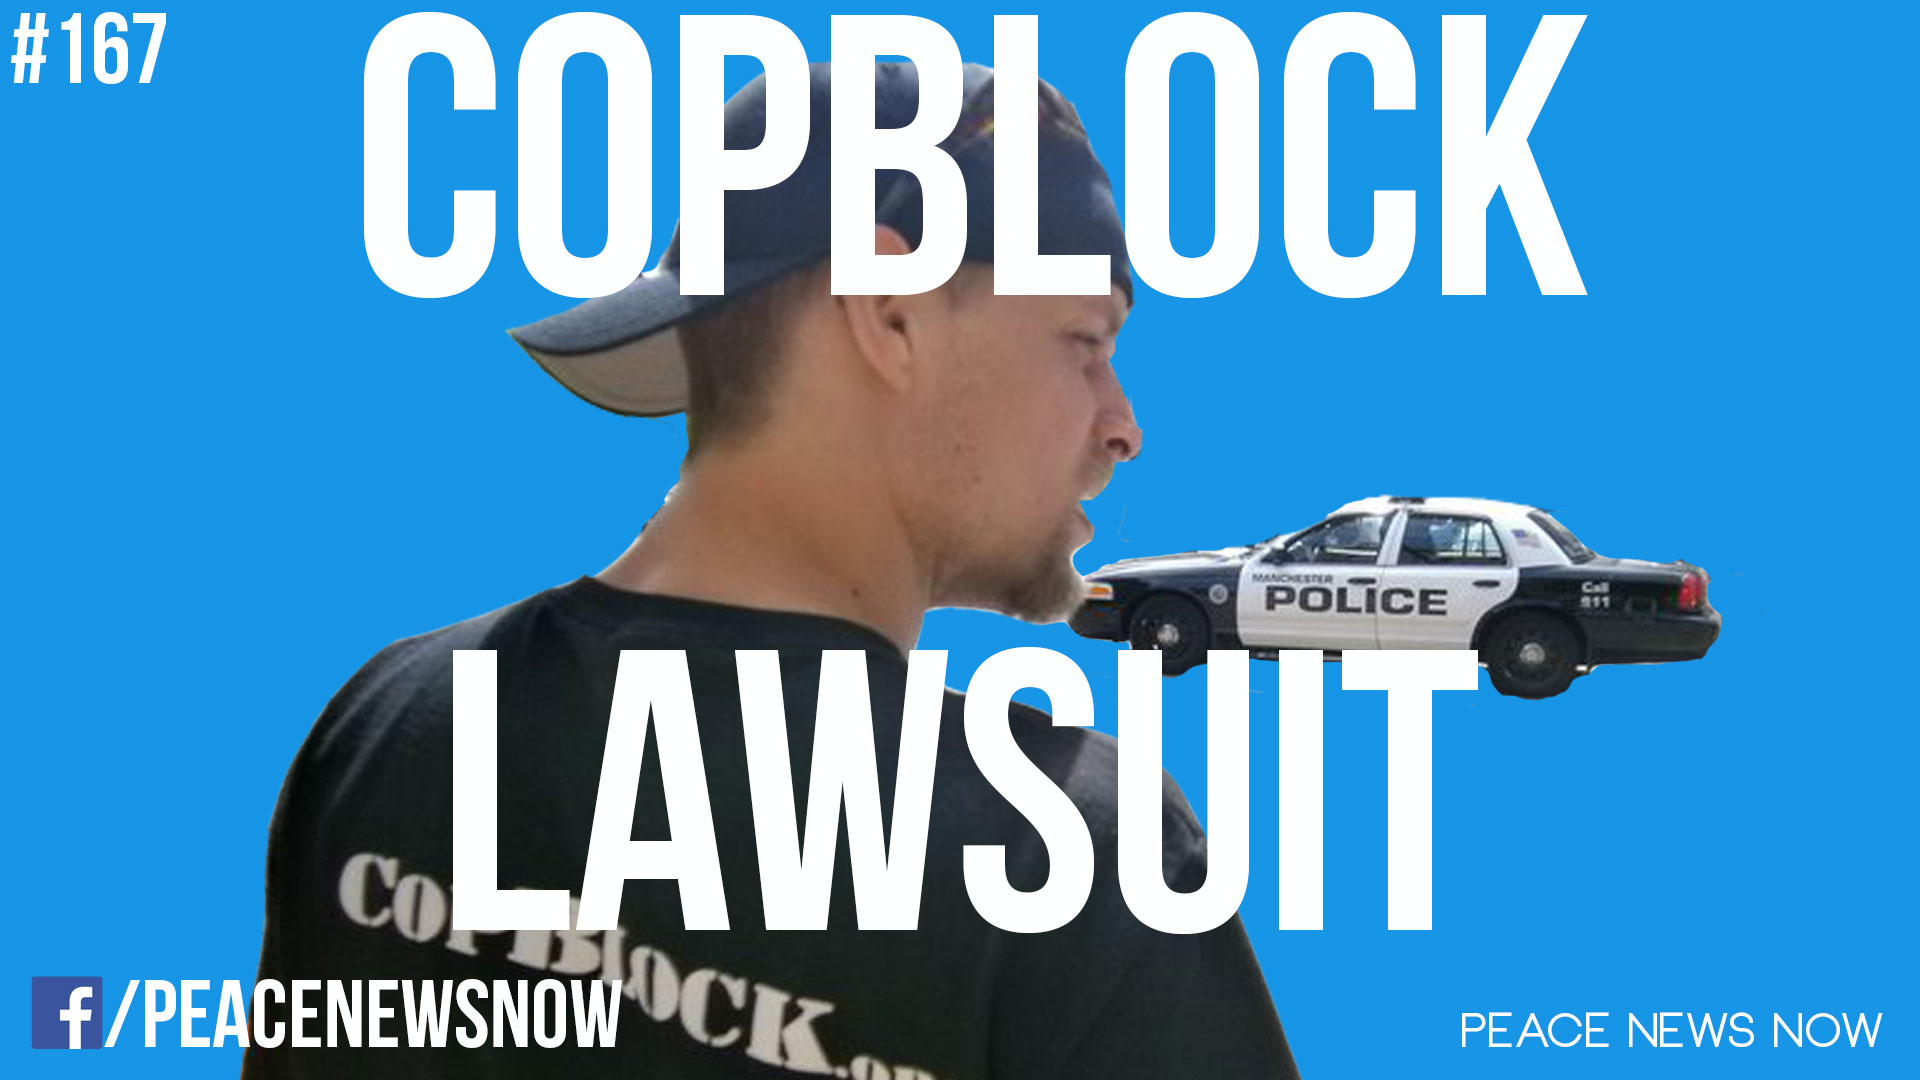 167-Copblock-Lawsuit